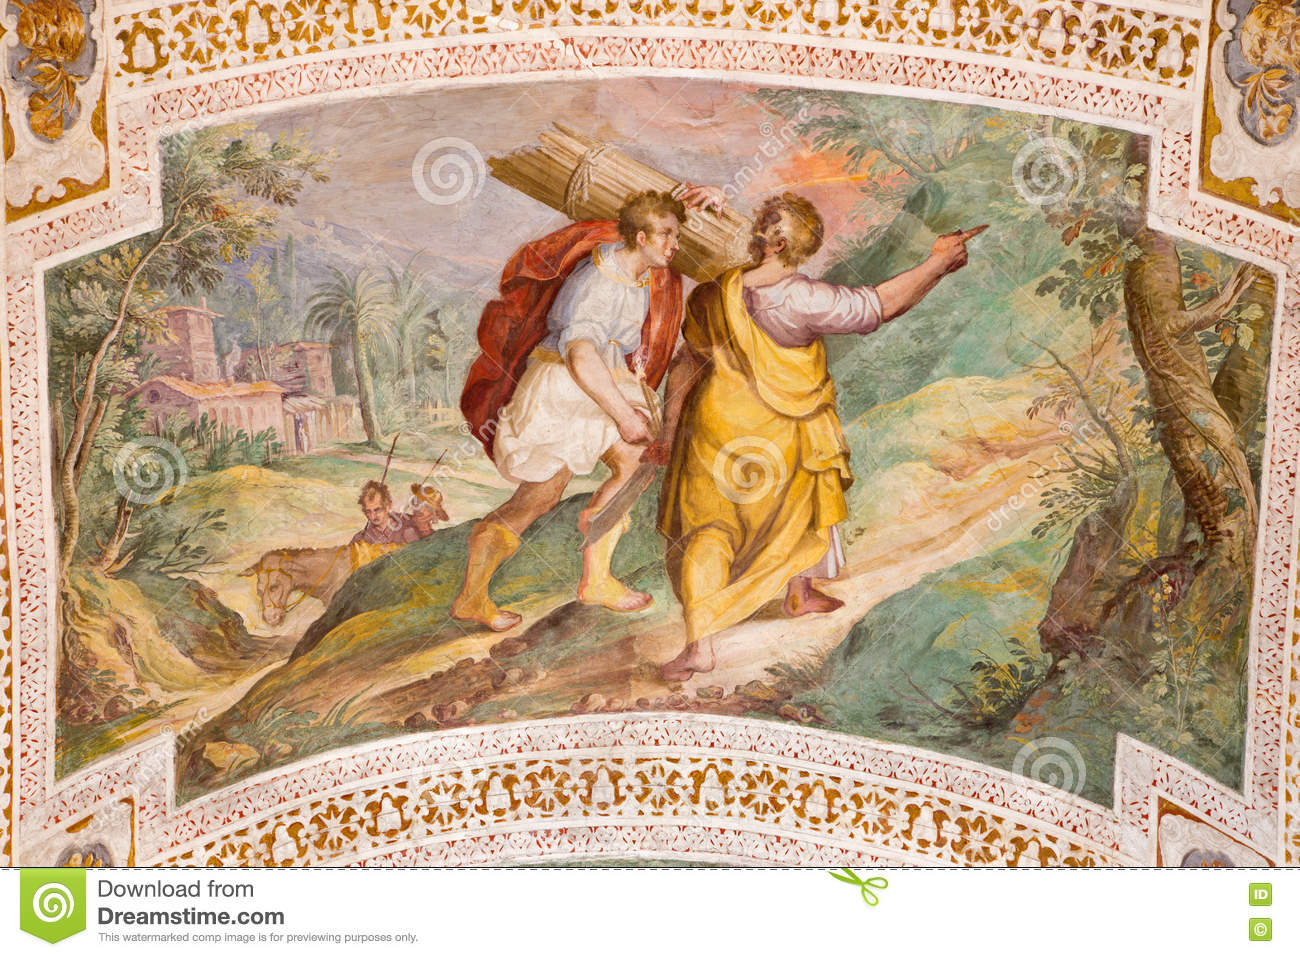 ROME, ITALY - MARCH 11, 2016: The Abraham and Isaac Going to the Sacrifice by P. Bril, and A. Viviani 1560–1620.